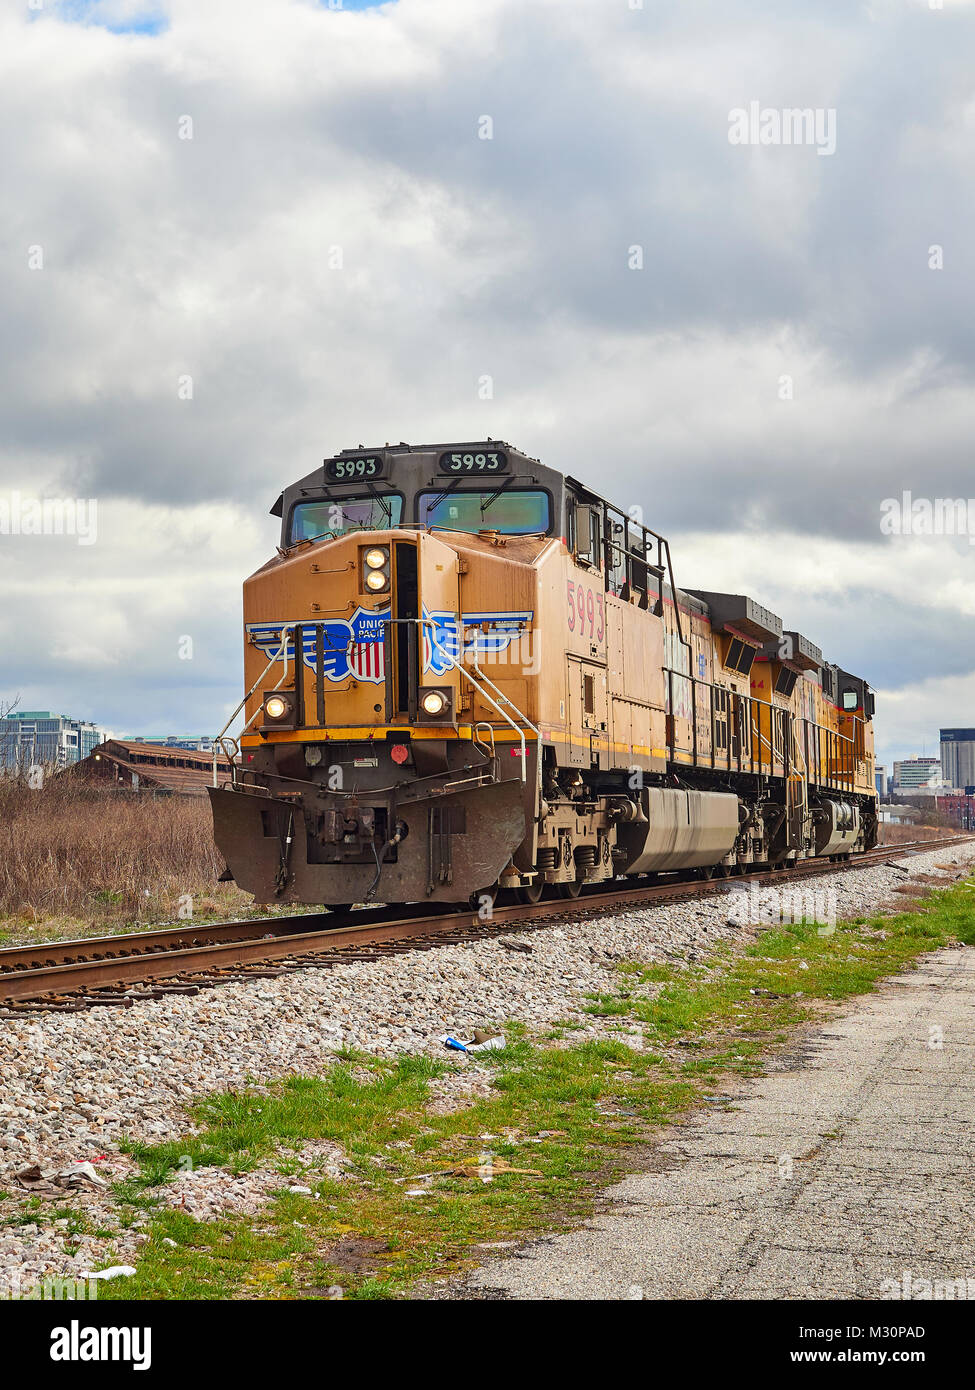 Union Pacific diesel locomotive #5993 traveling along a railroad siding in Montgomery Alabama, USA. - Stock Image